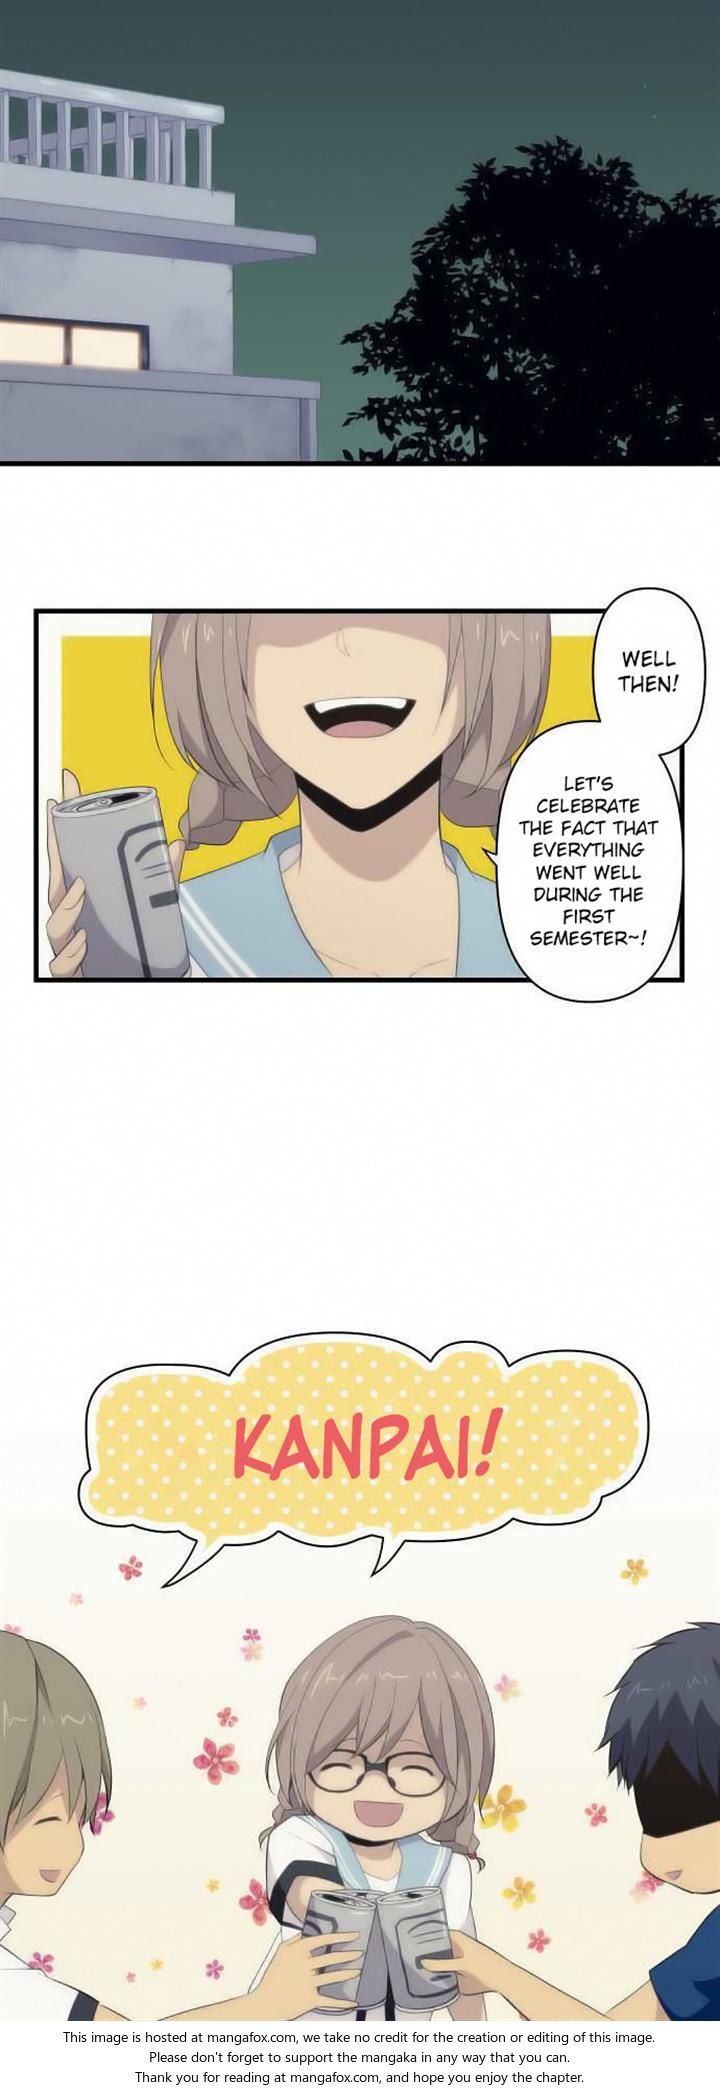 Crunchyroll forum funny anime pictures page 148 - Relife 94 Report94 End Of The Semester At Mangafox Me